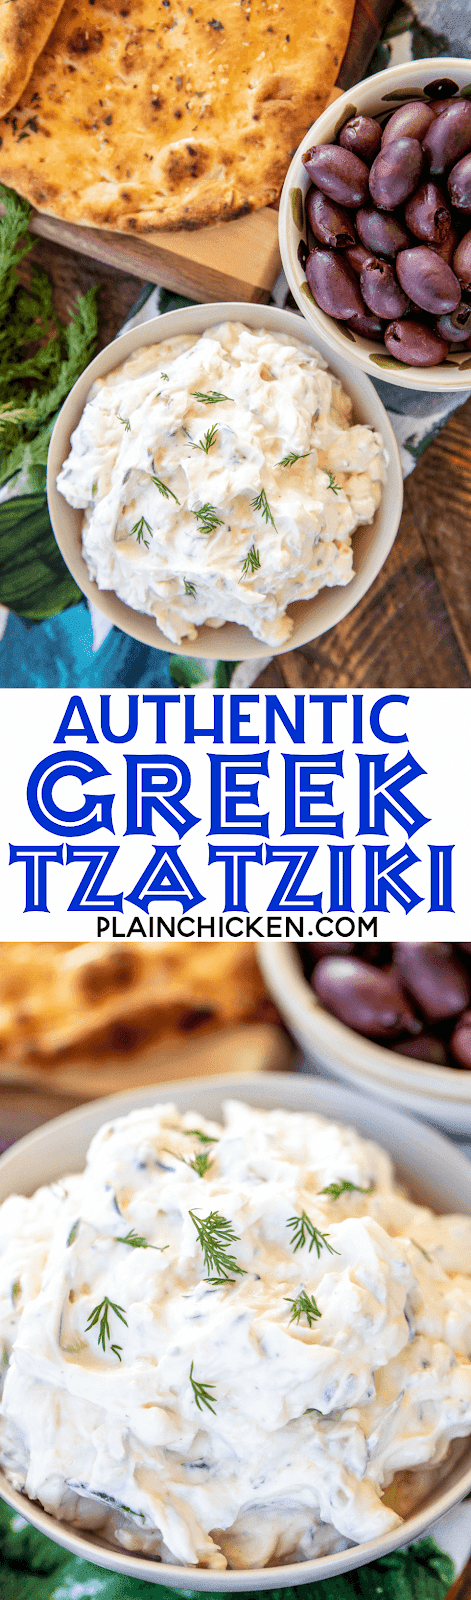 Authentic Greek Tzatziki - recipe from a Greek restaurant in Poros, Greece! SO simple and it tastes amazing! Goes great with lamb, pork, meatballs, gyros, chicken and bread. Greek yogurt, garlic, salt, pepper, cucumber and olive oil. Can make in advance and refrigerate 5 to 7 days. Great for a quick snack or parties! #greek #tzatziki #greekyogurt #dip